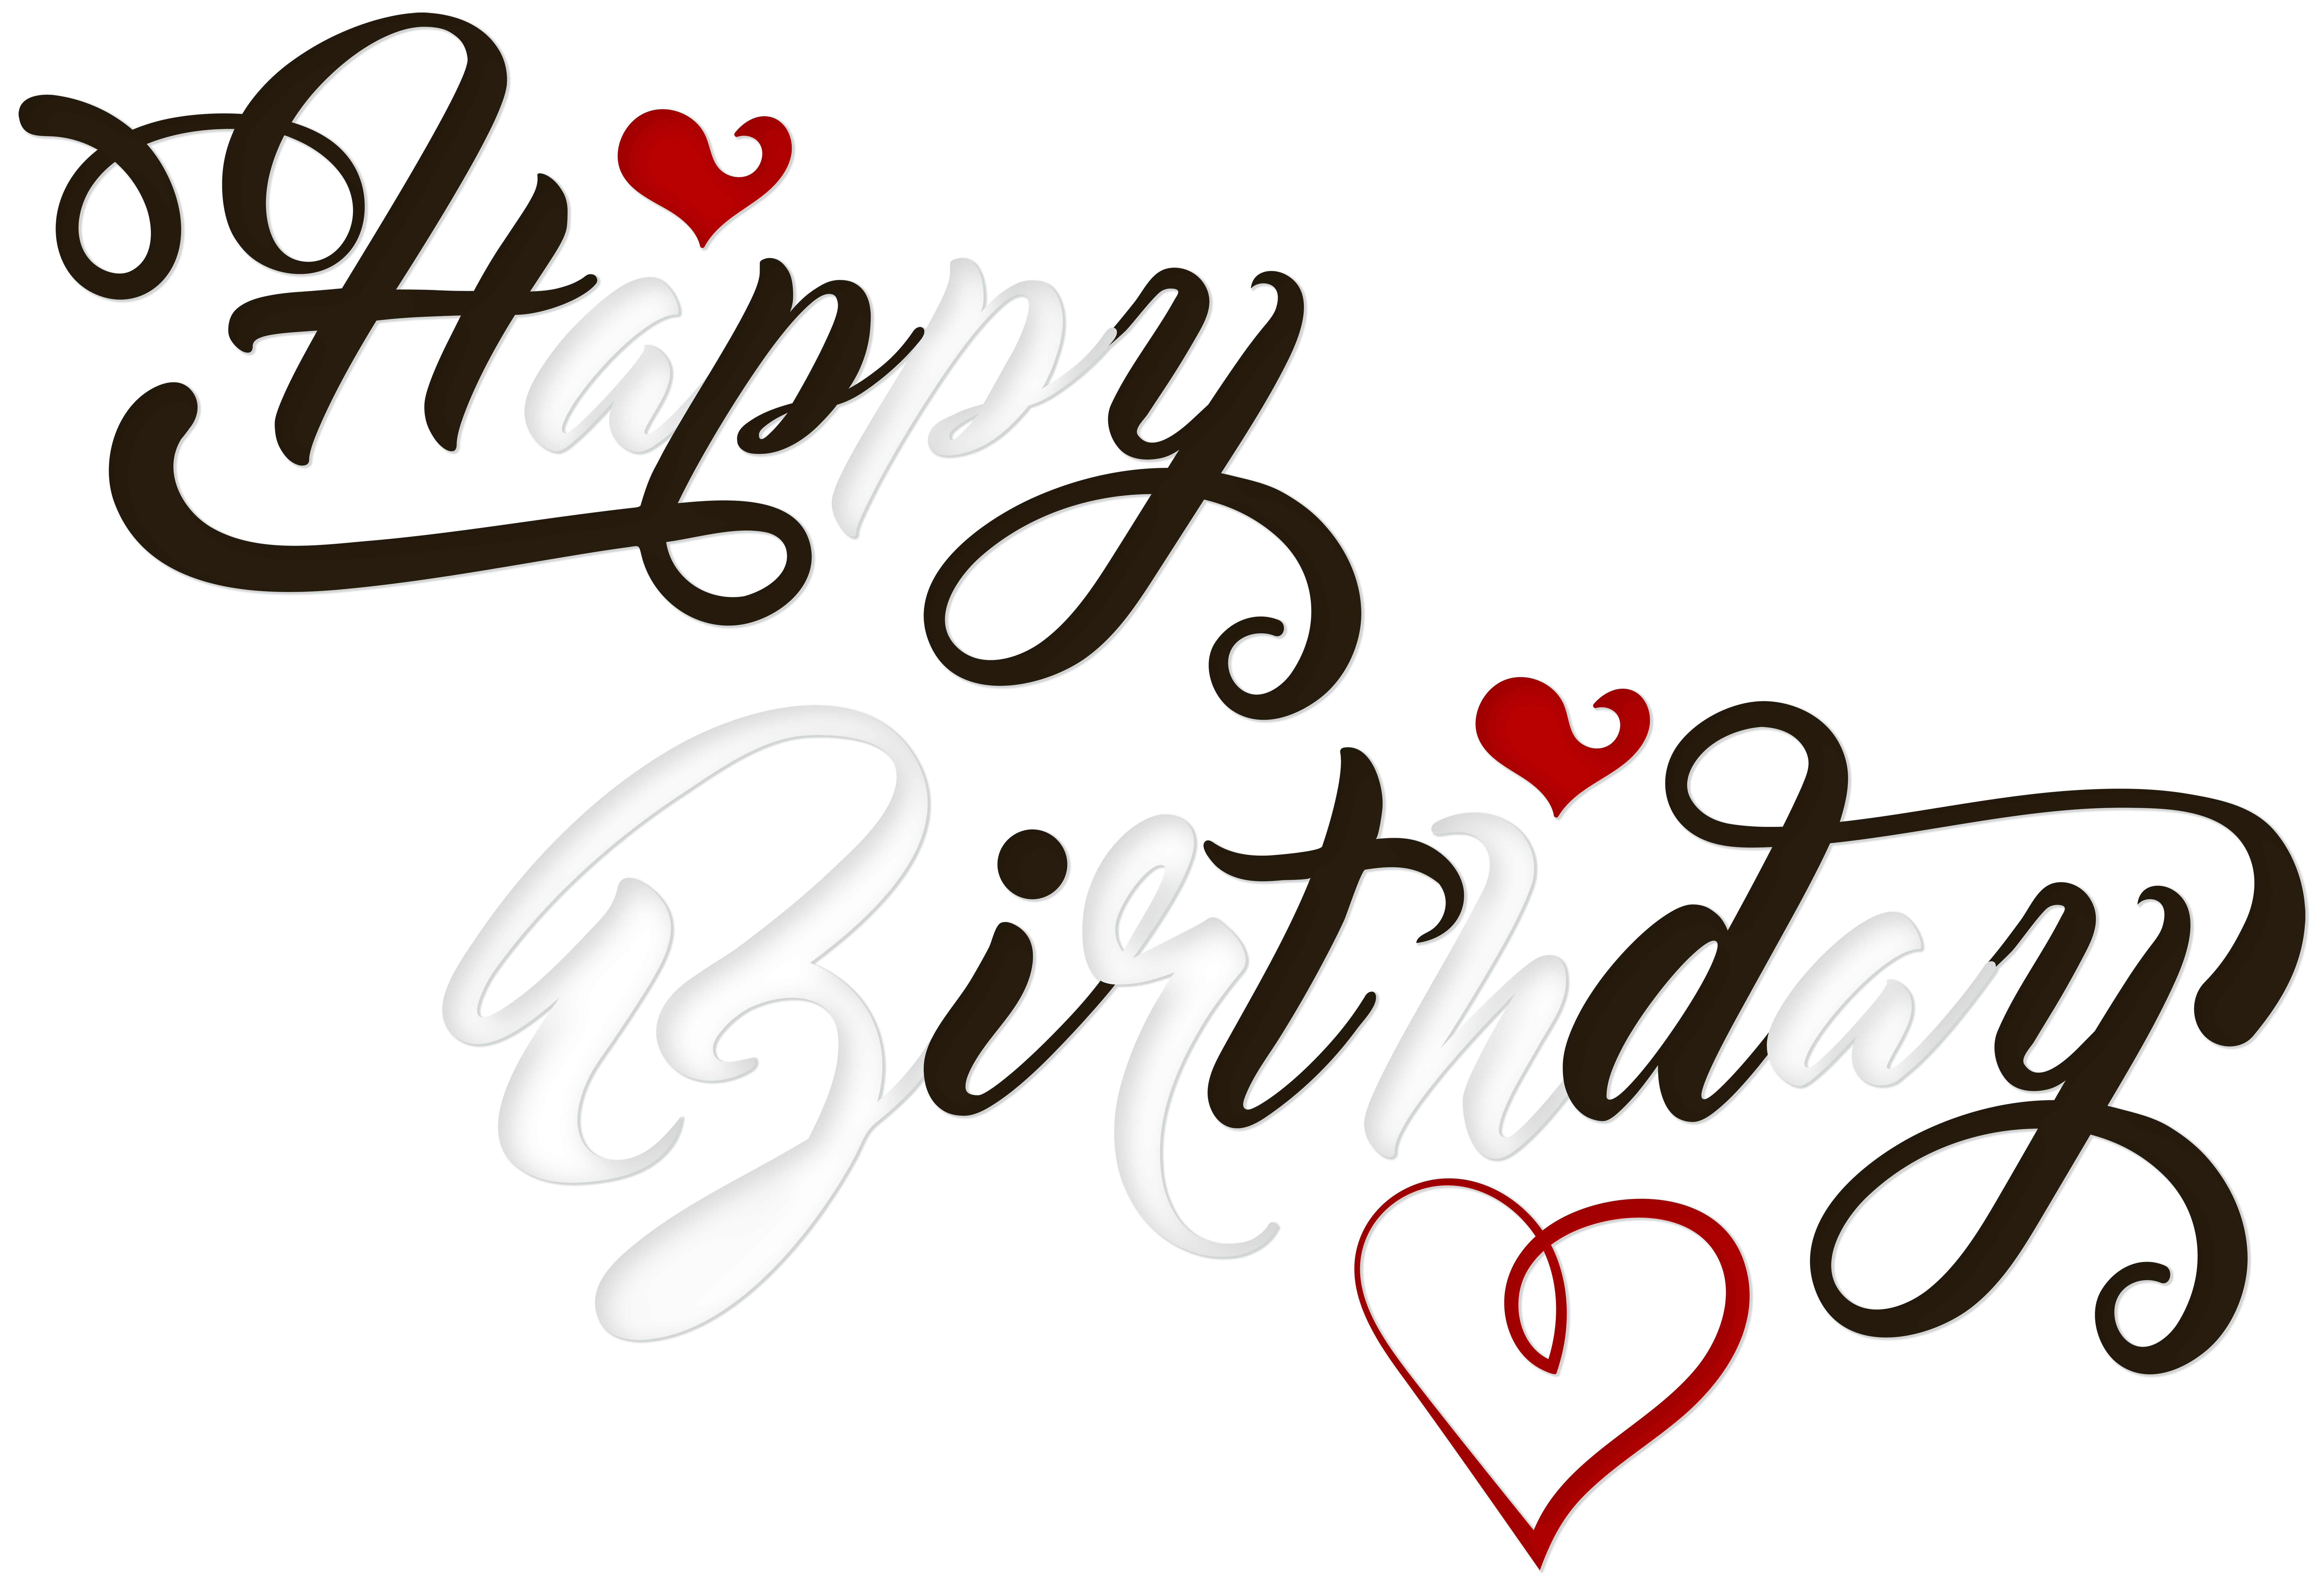 Calligraphy heart clipart vector royalty free stock Birthday cake Black and white Clip art - Happy Birthday Black and ... vector royalty free stock